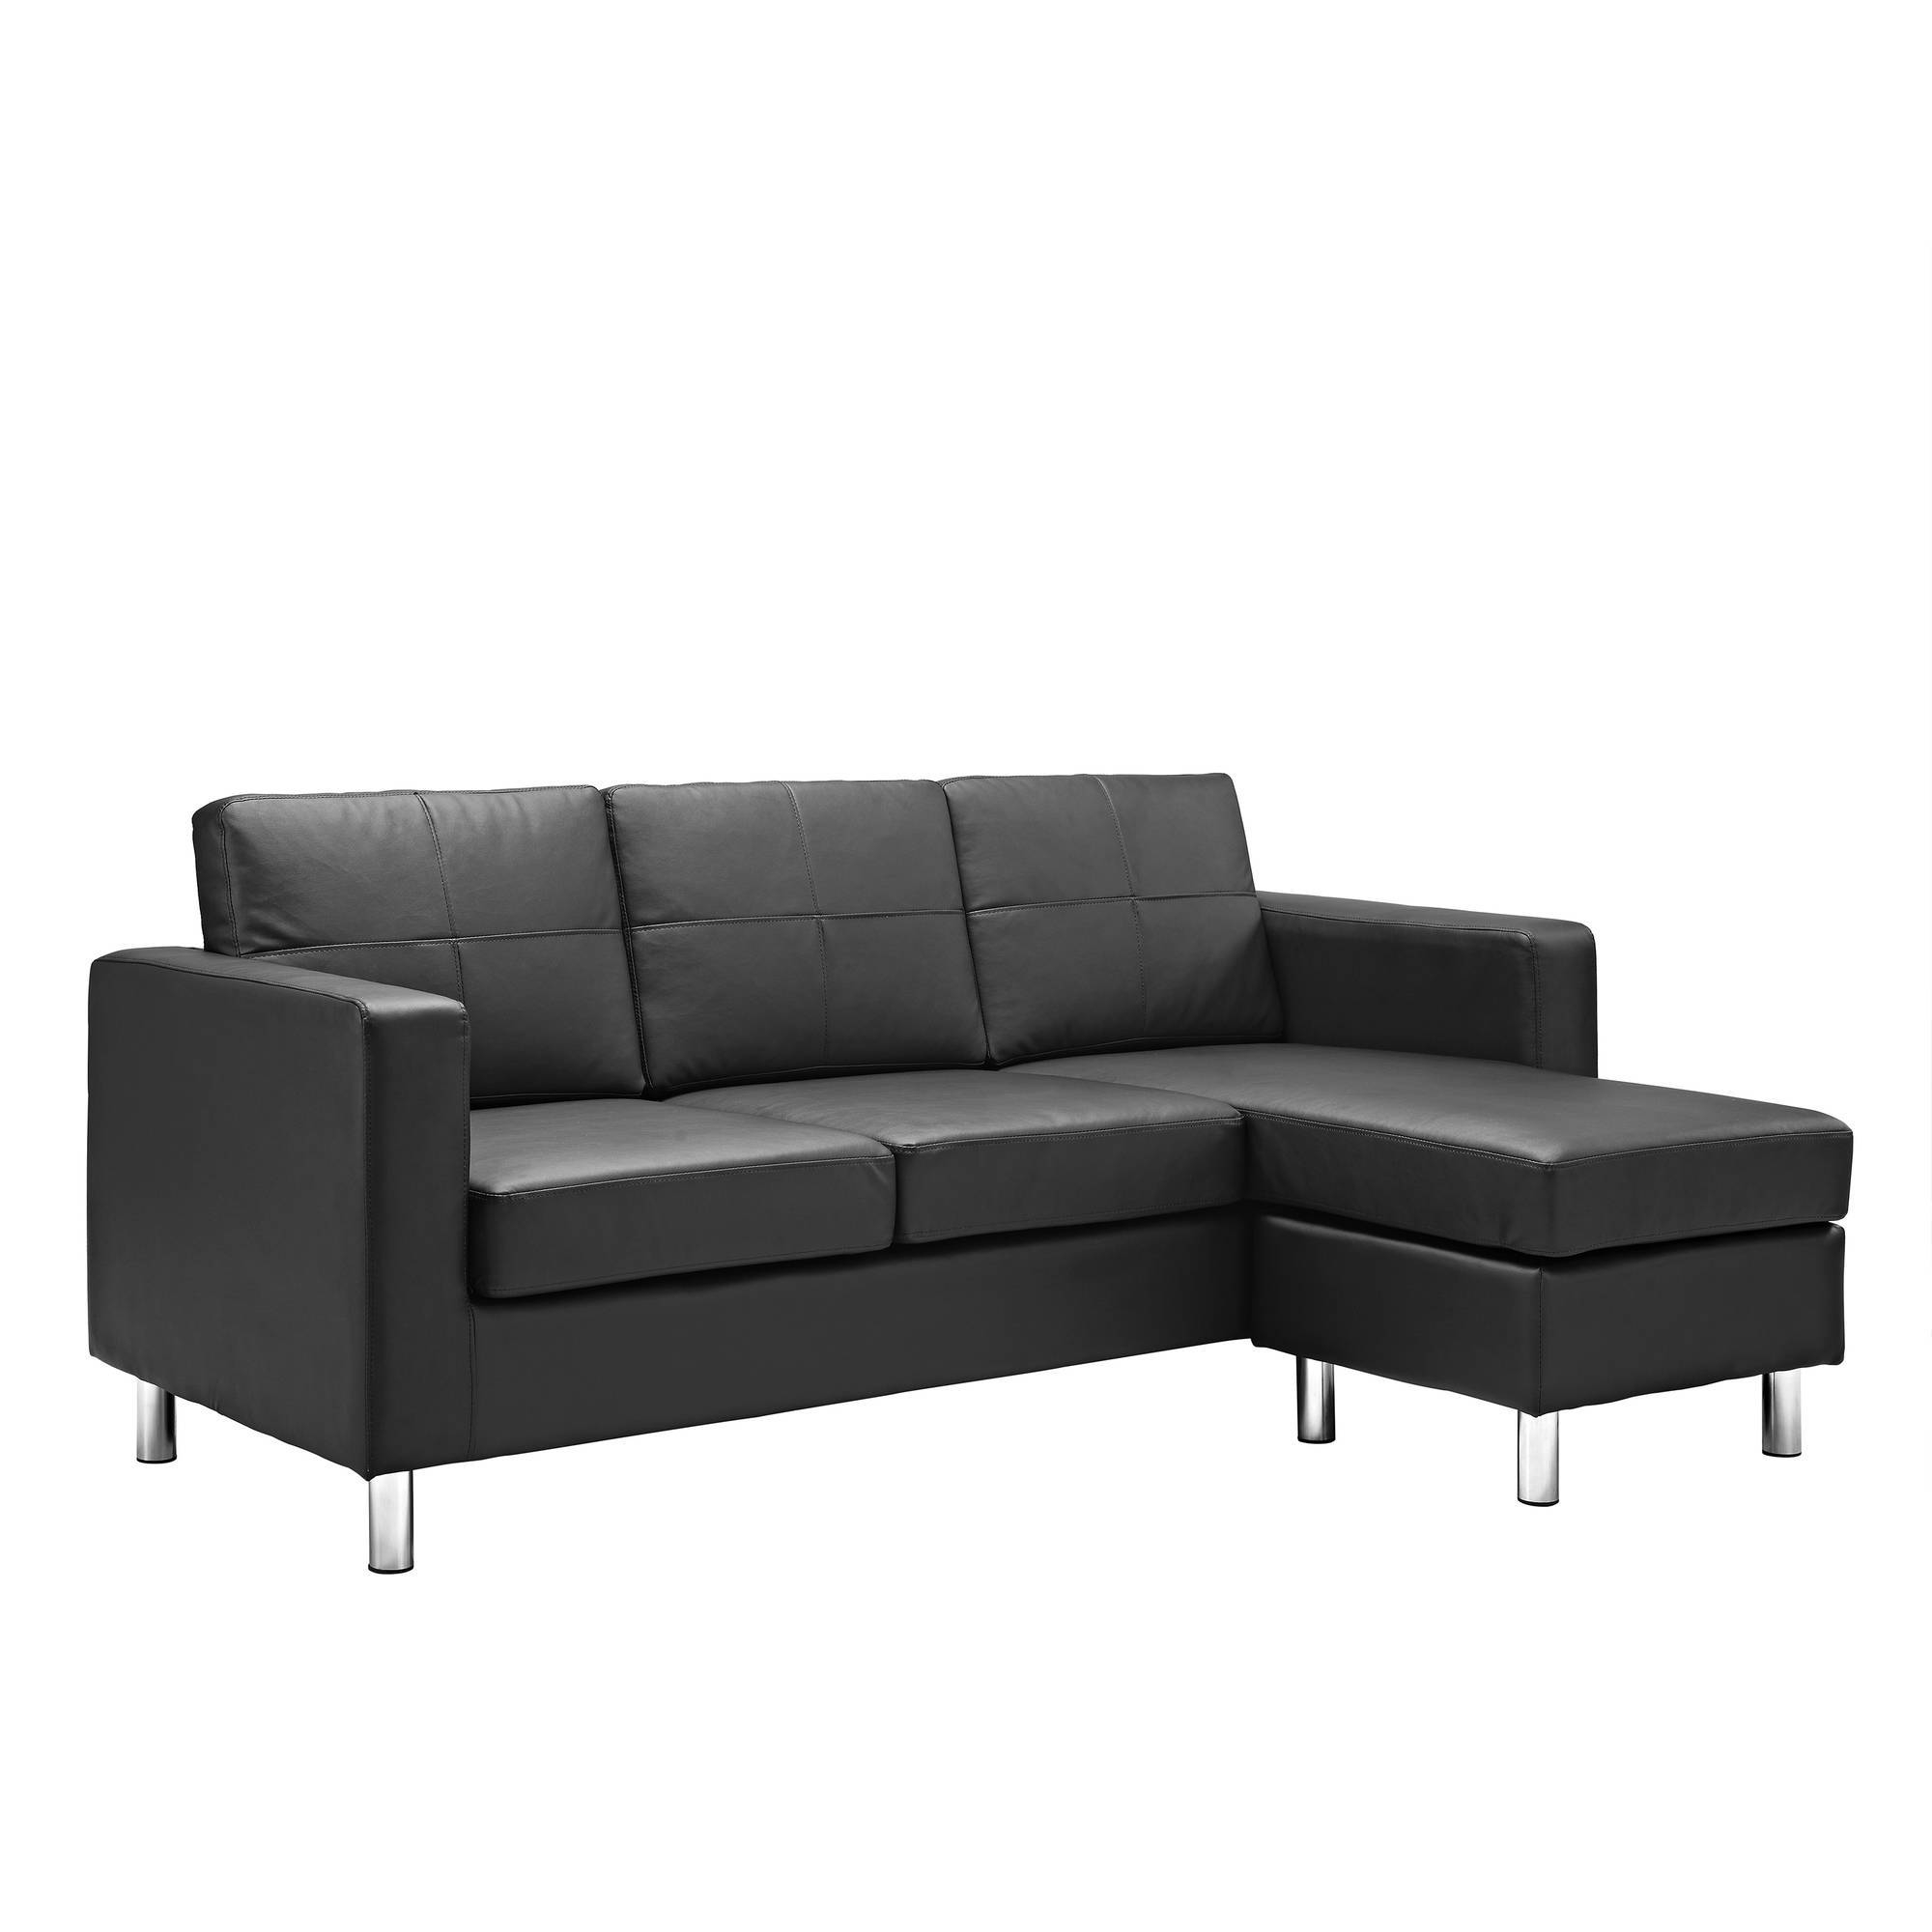 Dorel Living Small Spaces Configurable Sectional Sofa, Multiple within Condo Sectional Sofas (Image 10 of 30)